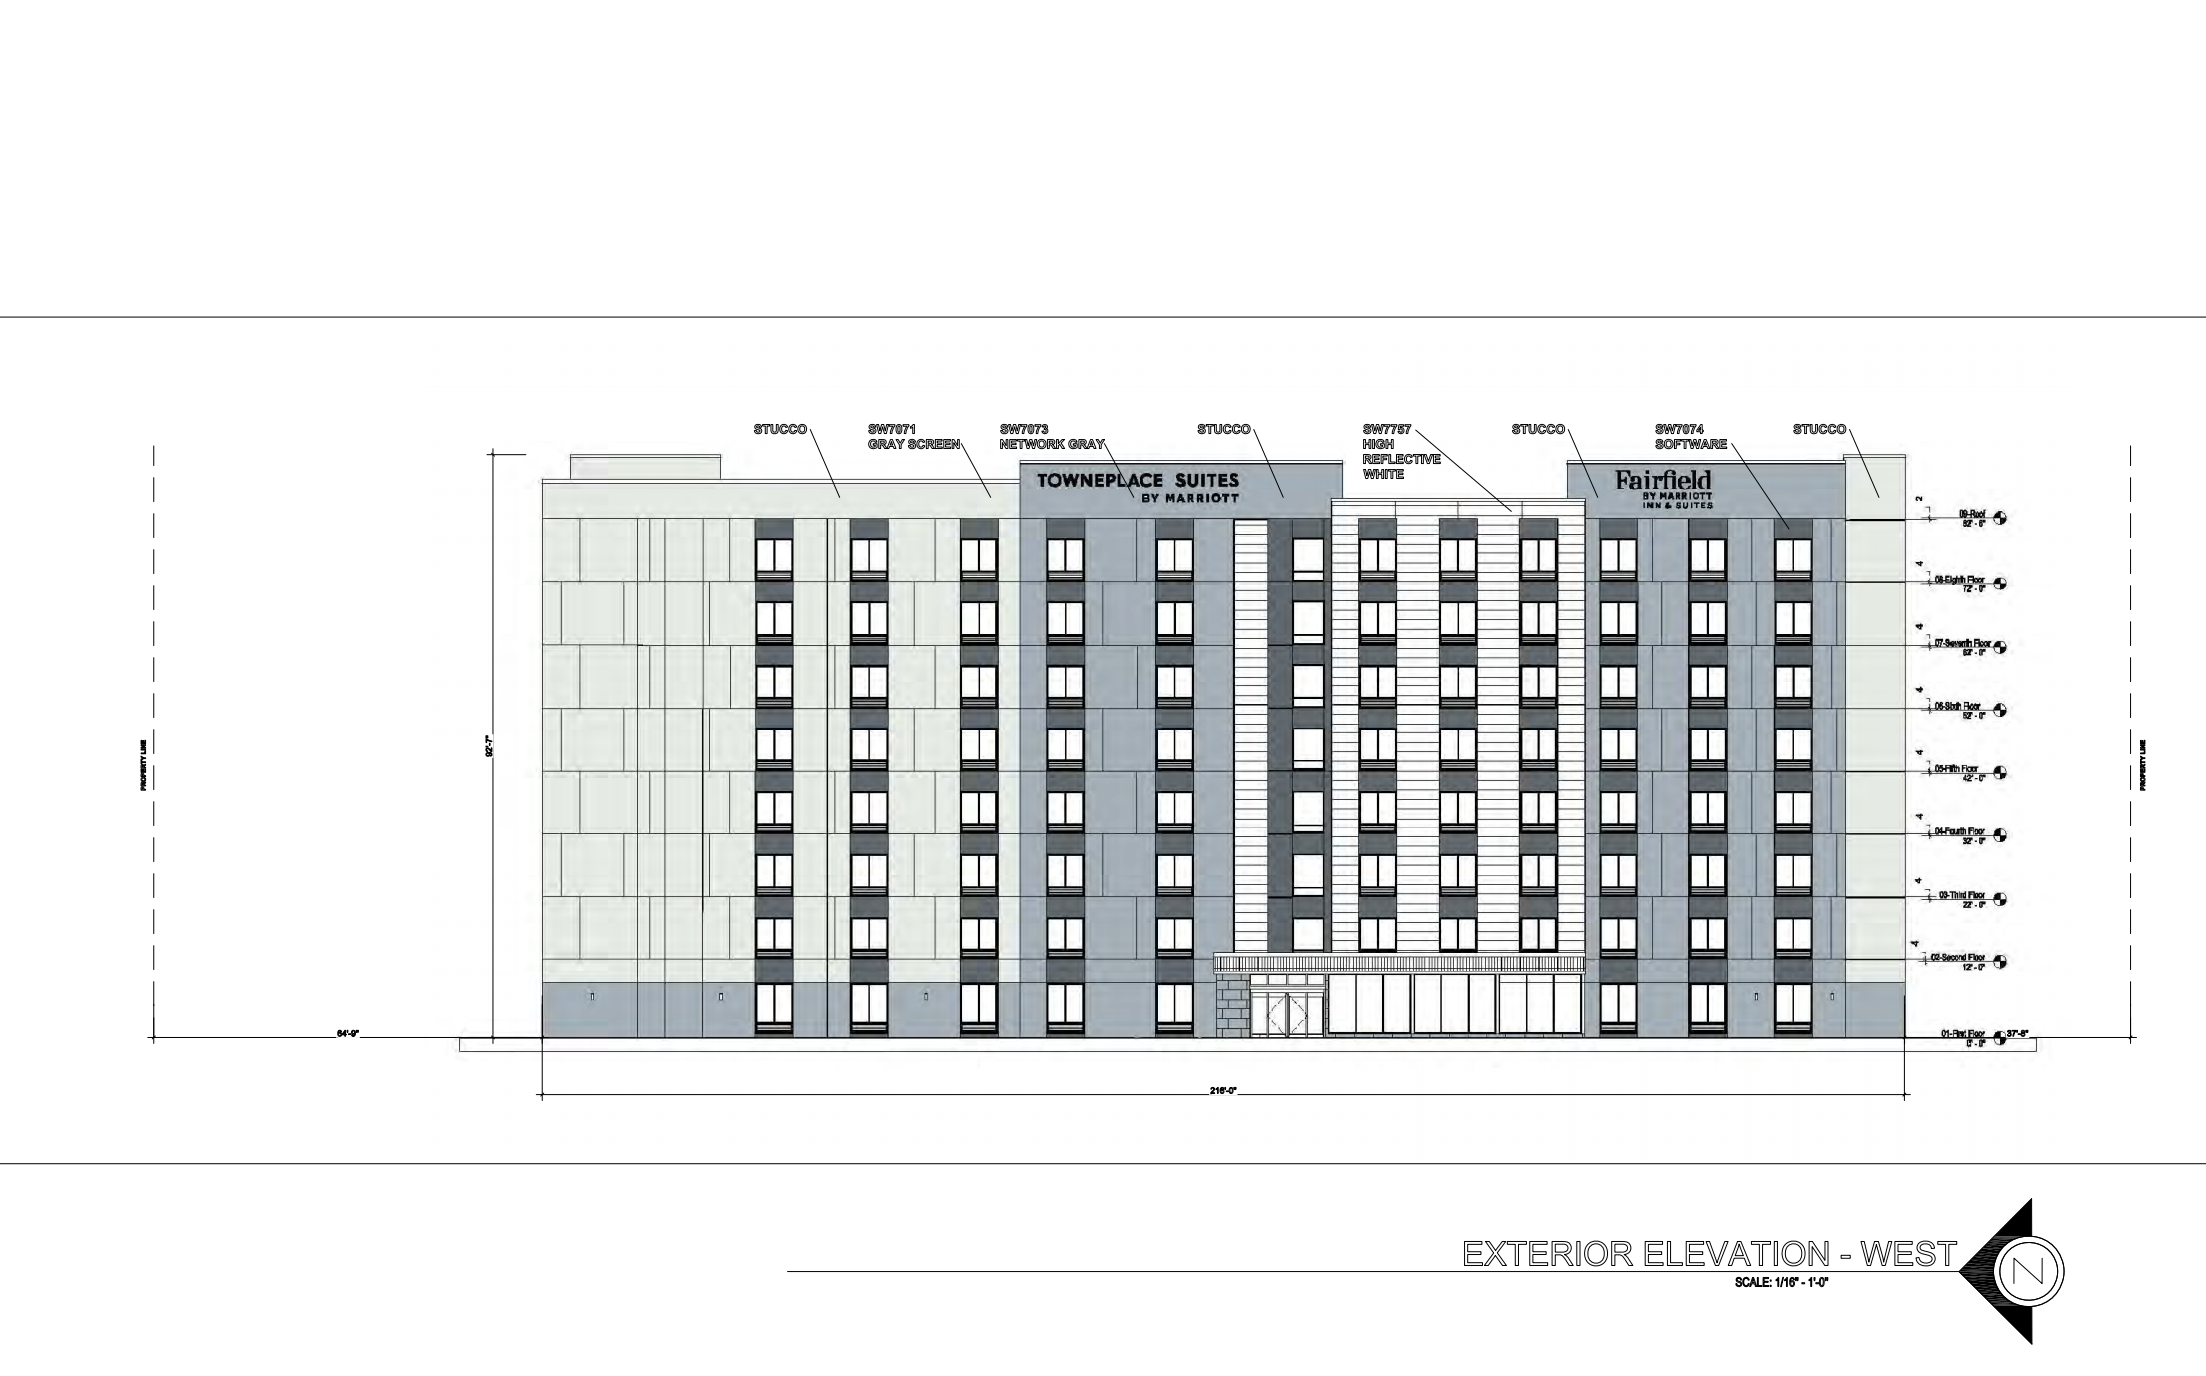 Fairfield Inn & Townplace Suites. Designed by George White Architect.